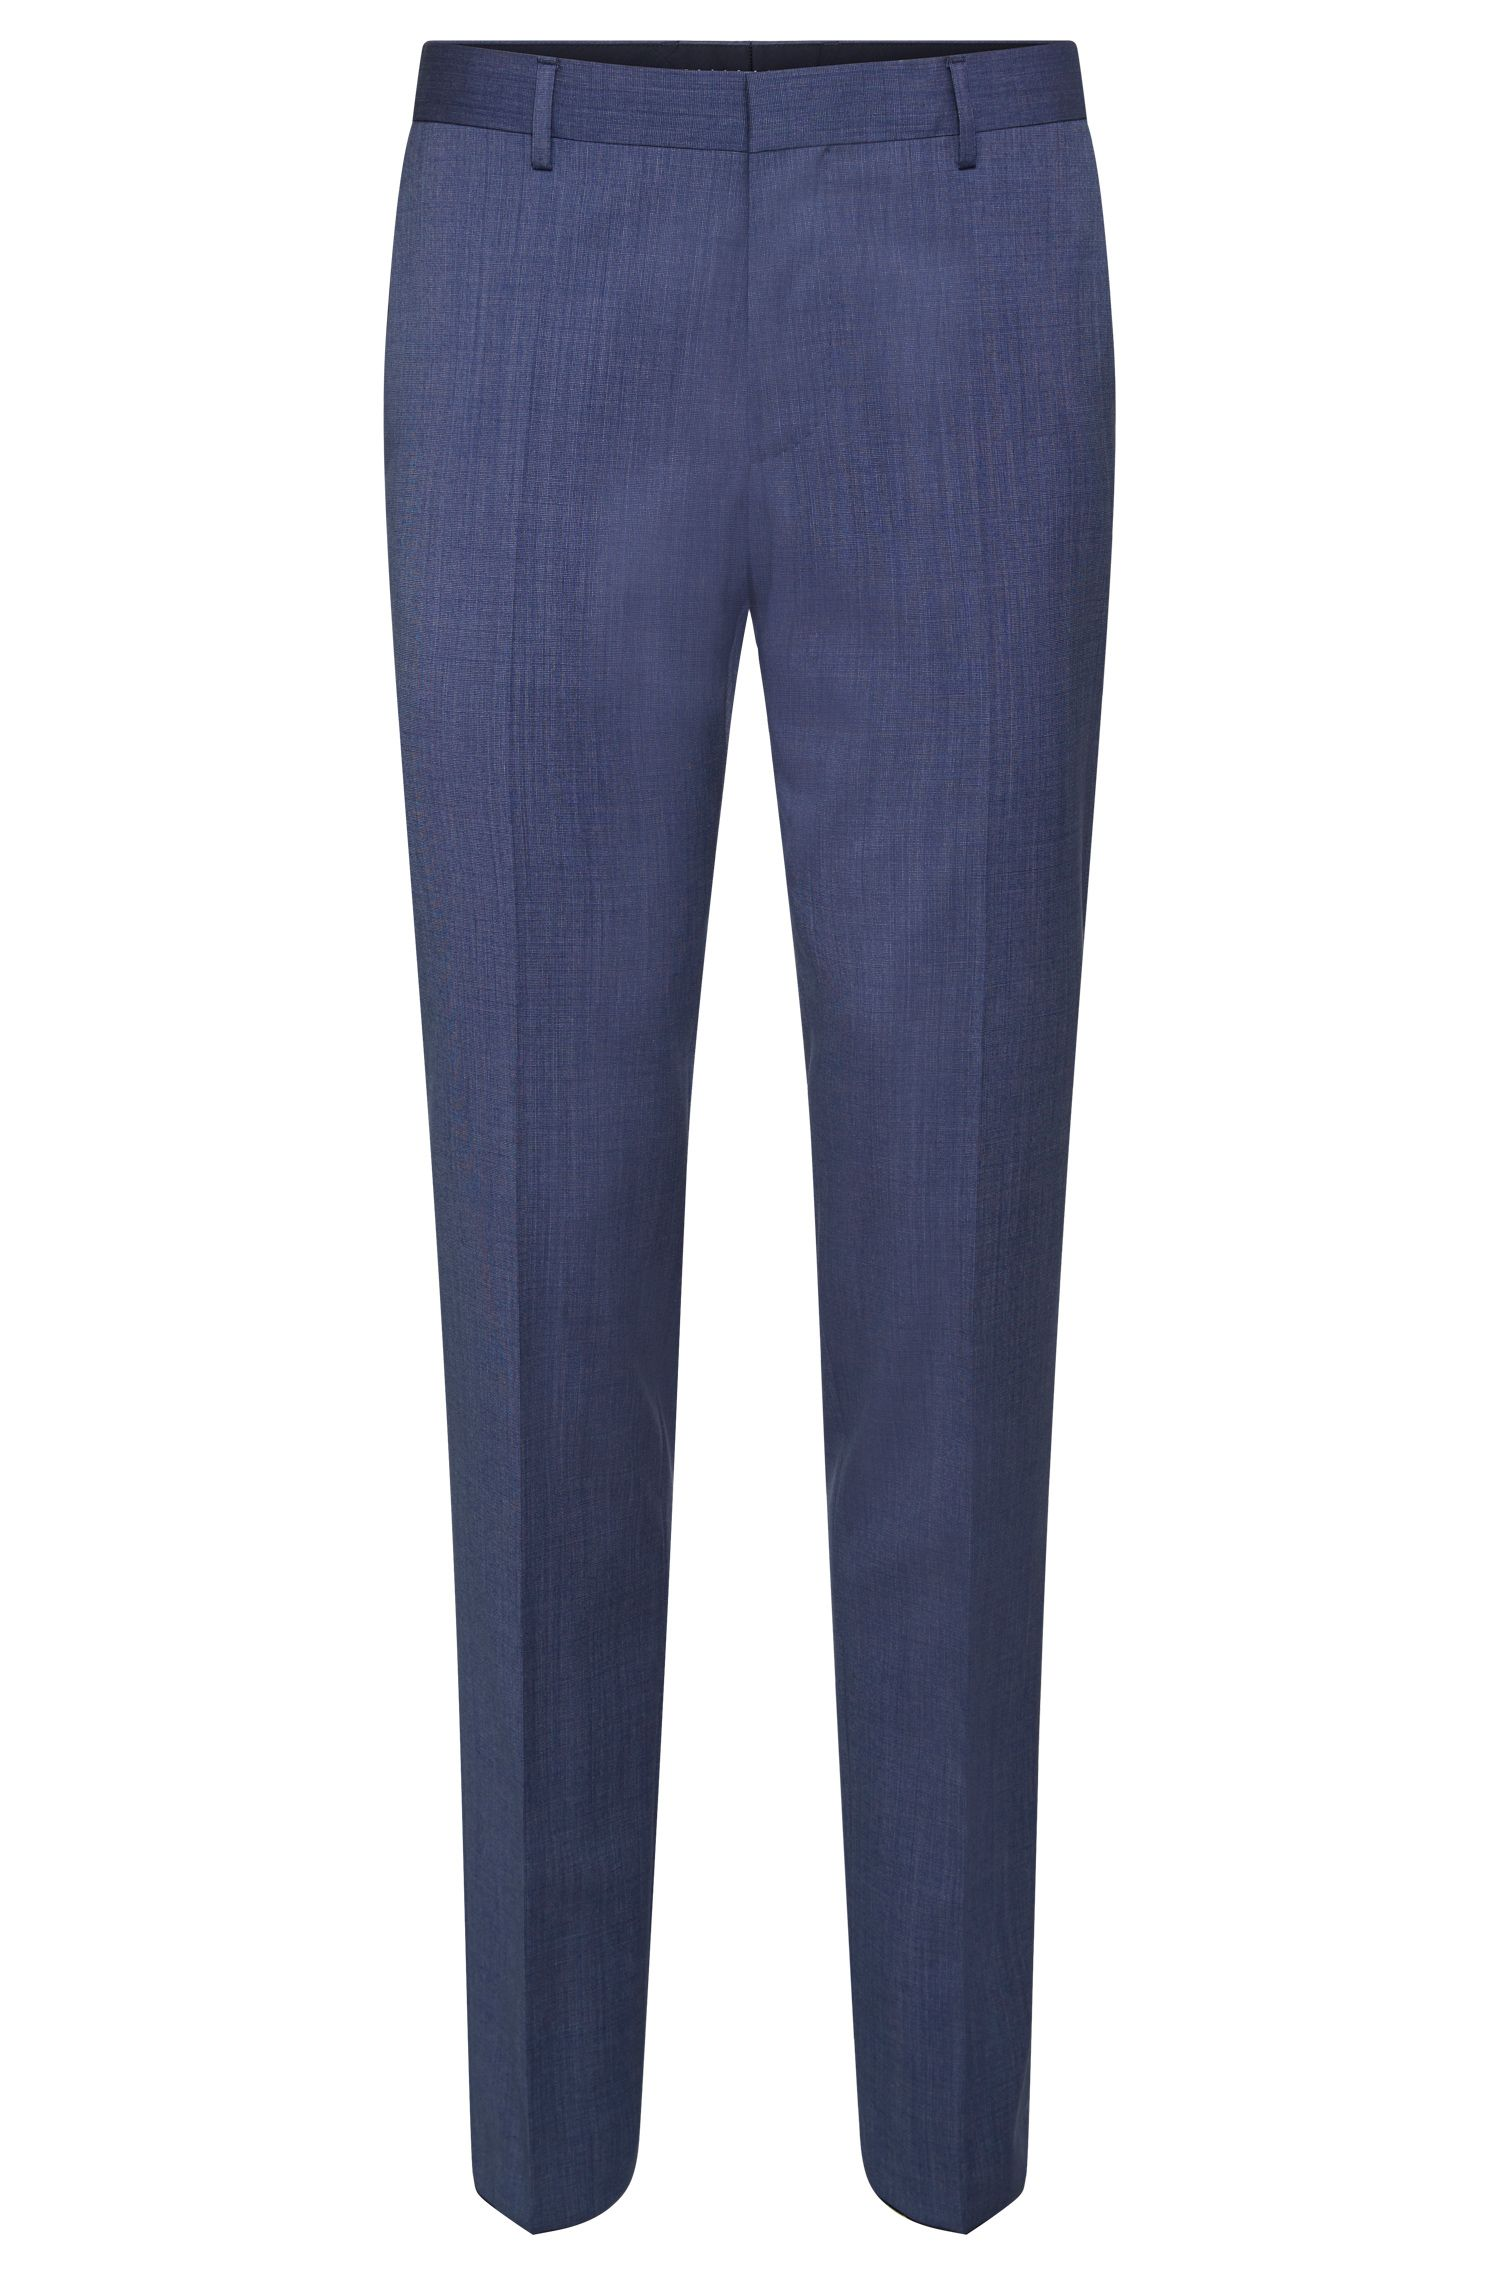 Italian Super 110 Virgin Wool Dress Pant, Slim Fit | Bevan